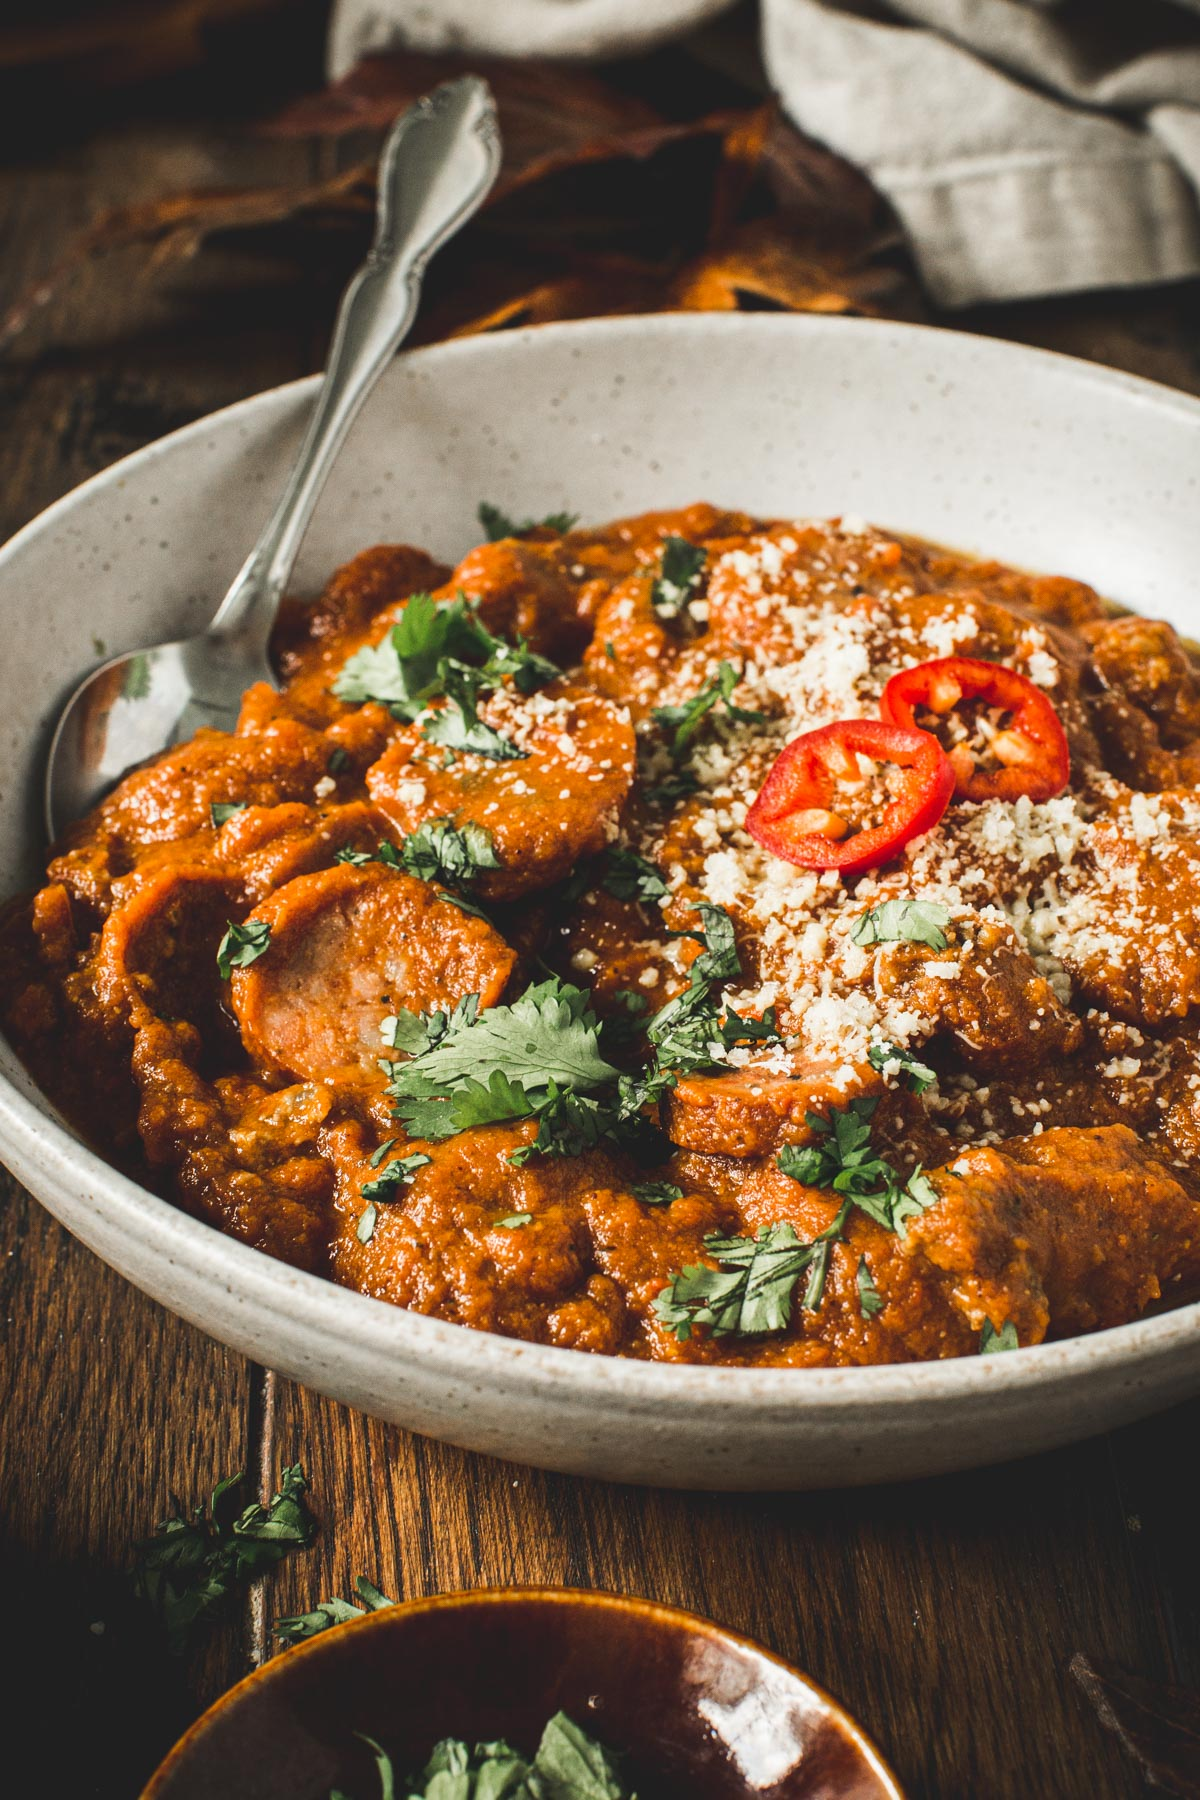 Sausage pumpkin chili topped with cilantro and grated cheese in a bowl.